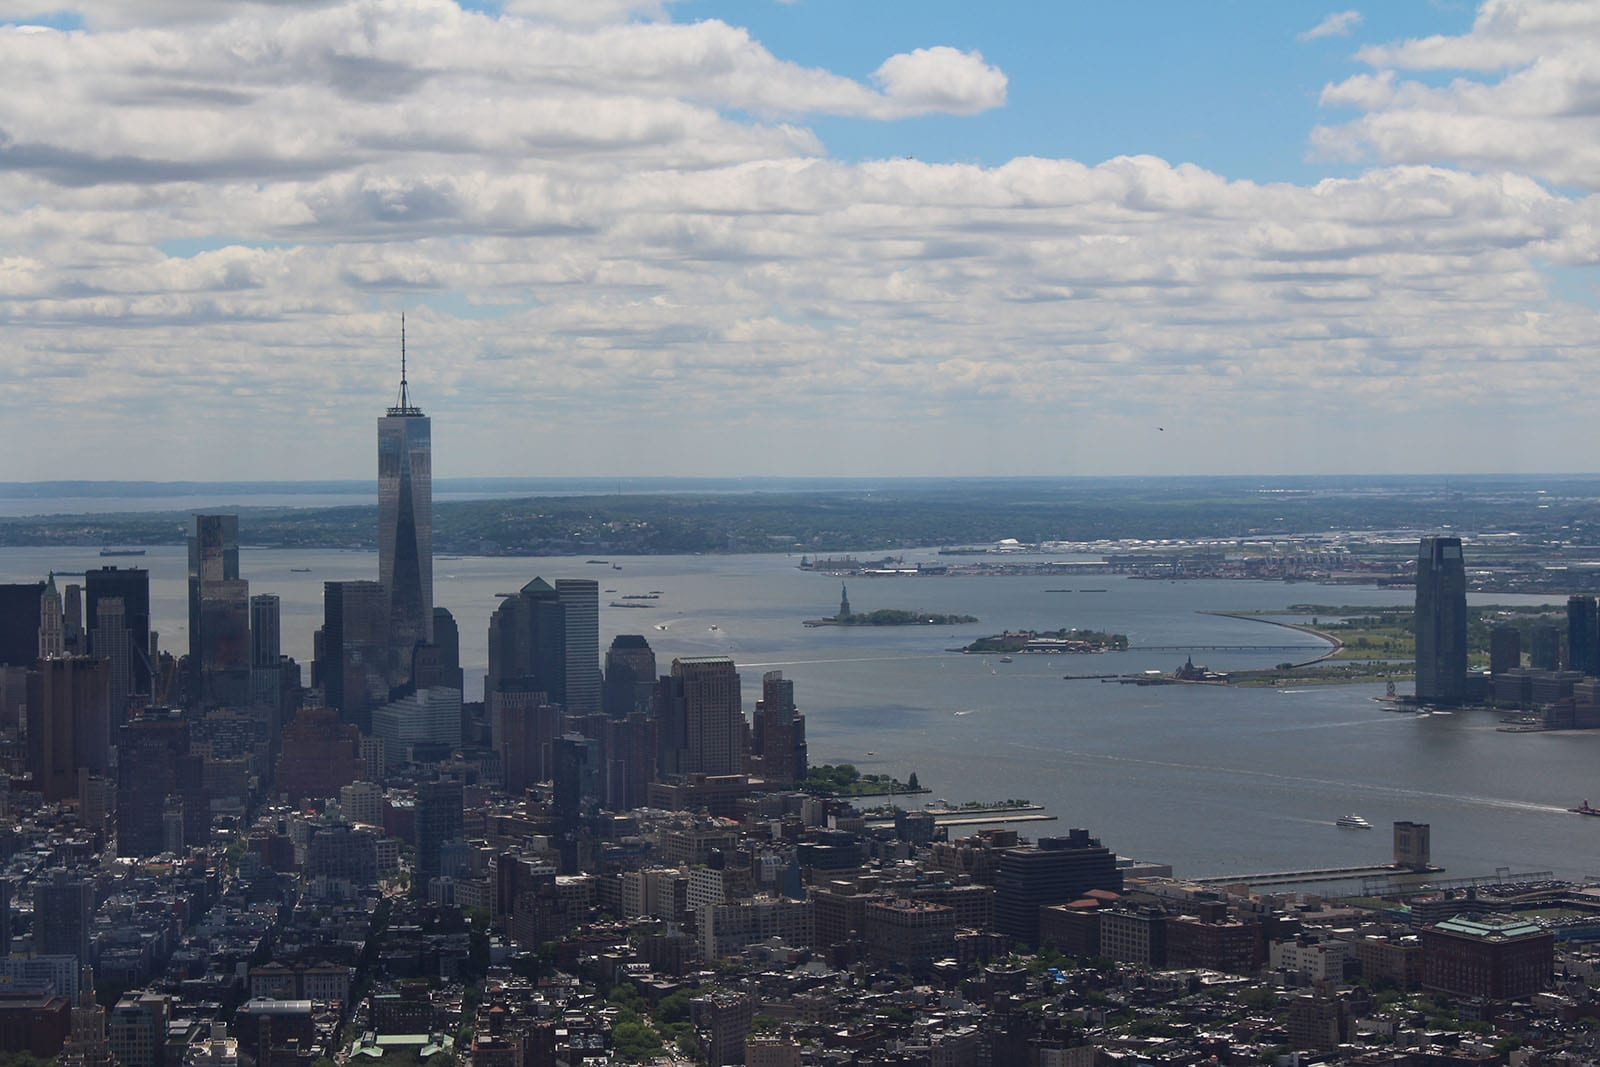 Empire State Building Level 102 pic 2